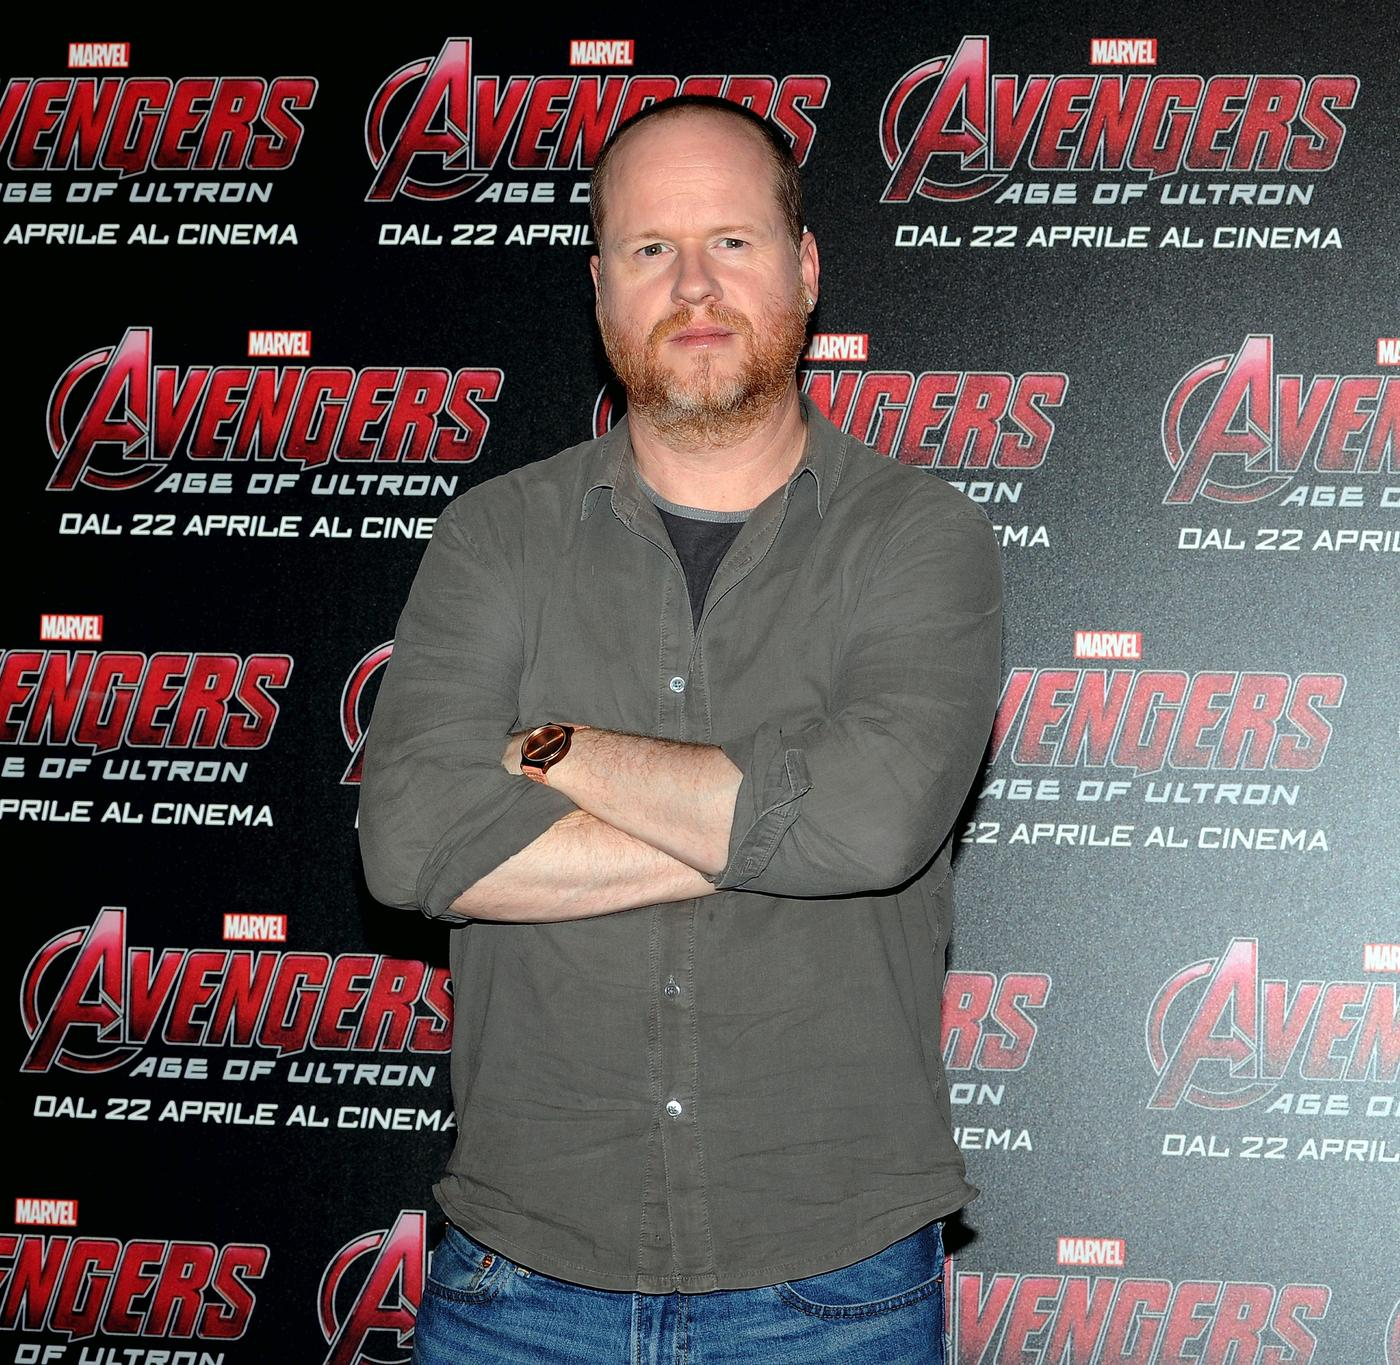 Avengers: Age Of Ultron director Joss Whedon: Firefly and Buffy still get the most fan attention